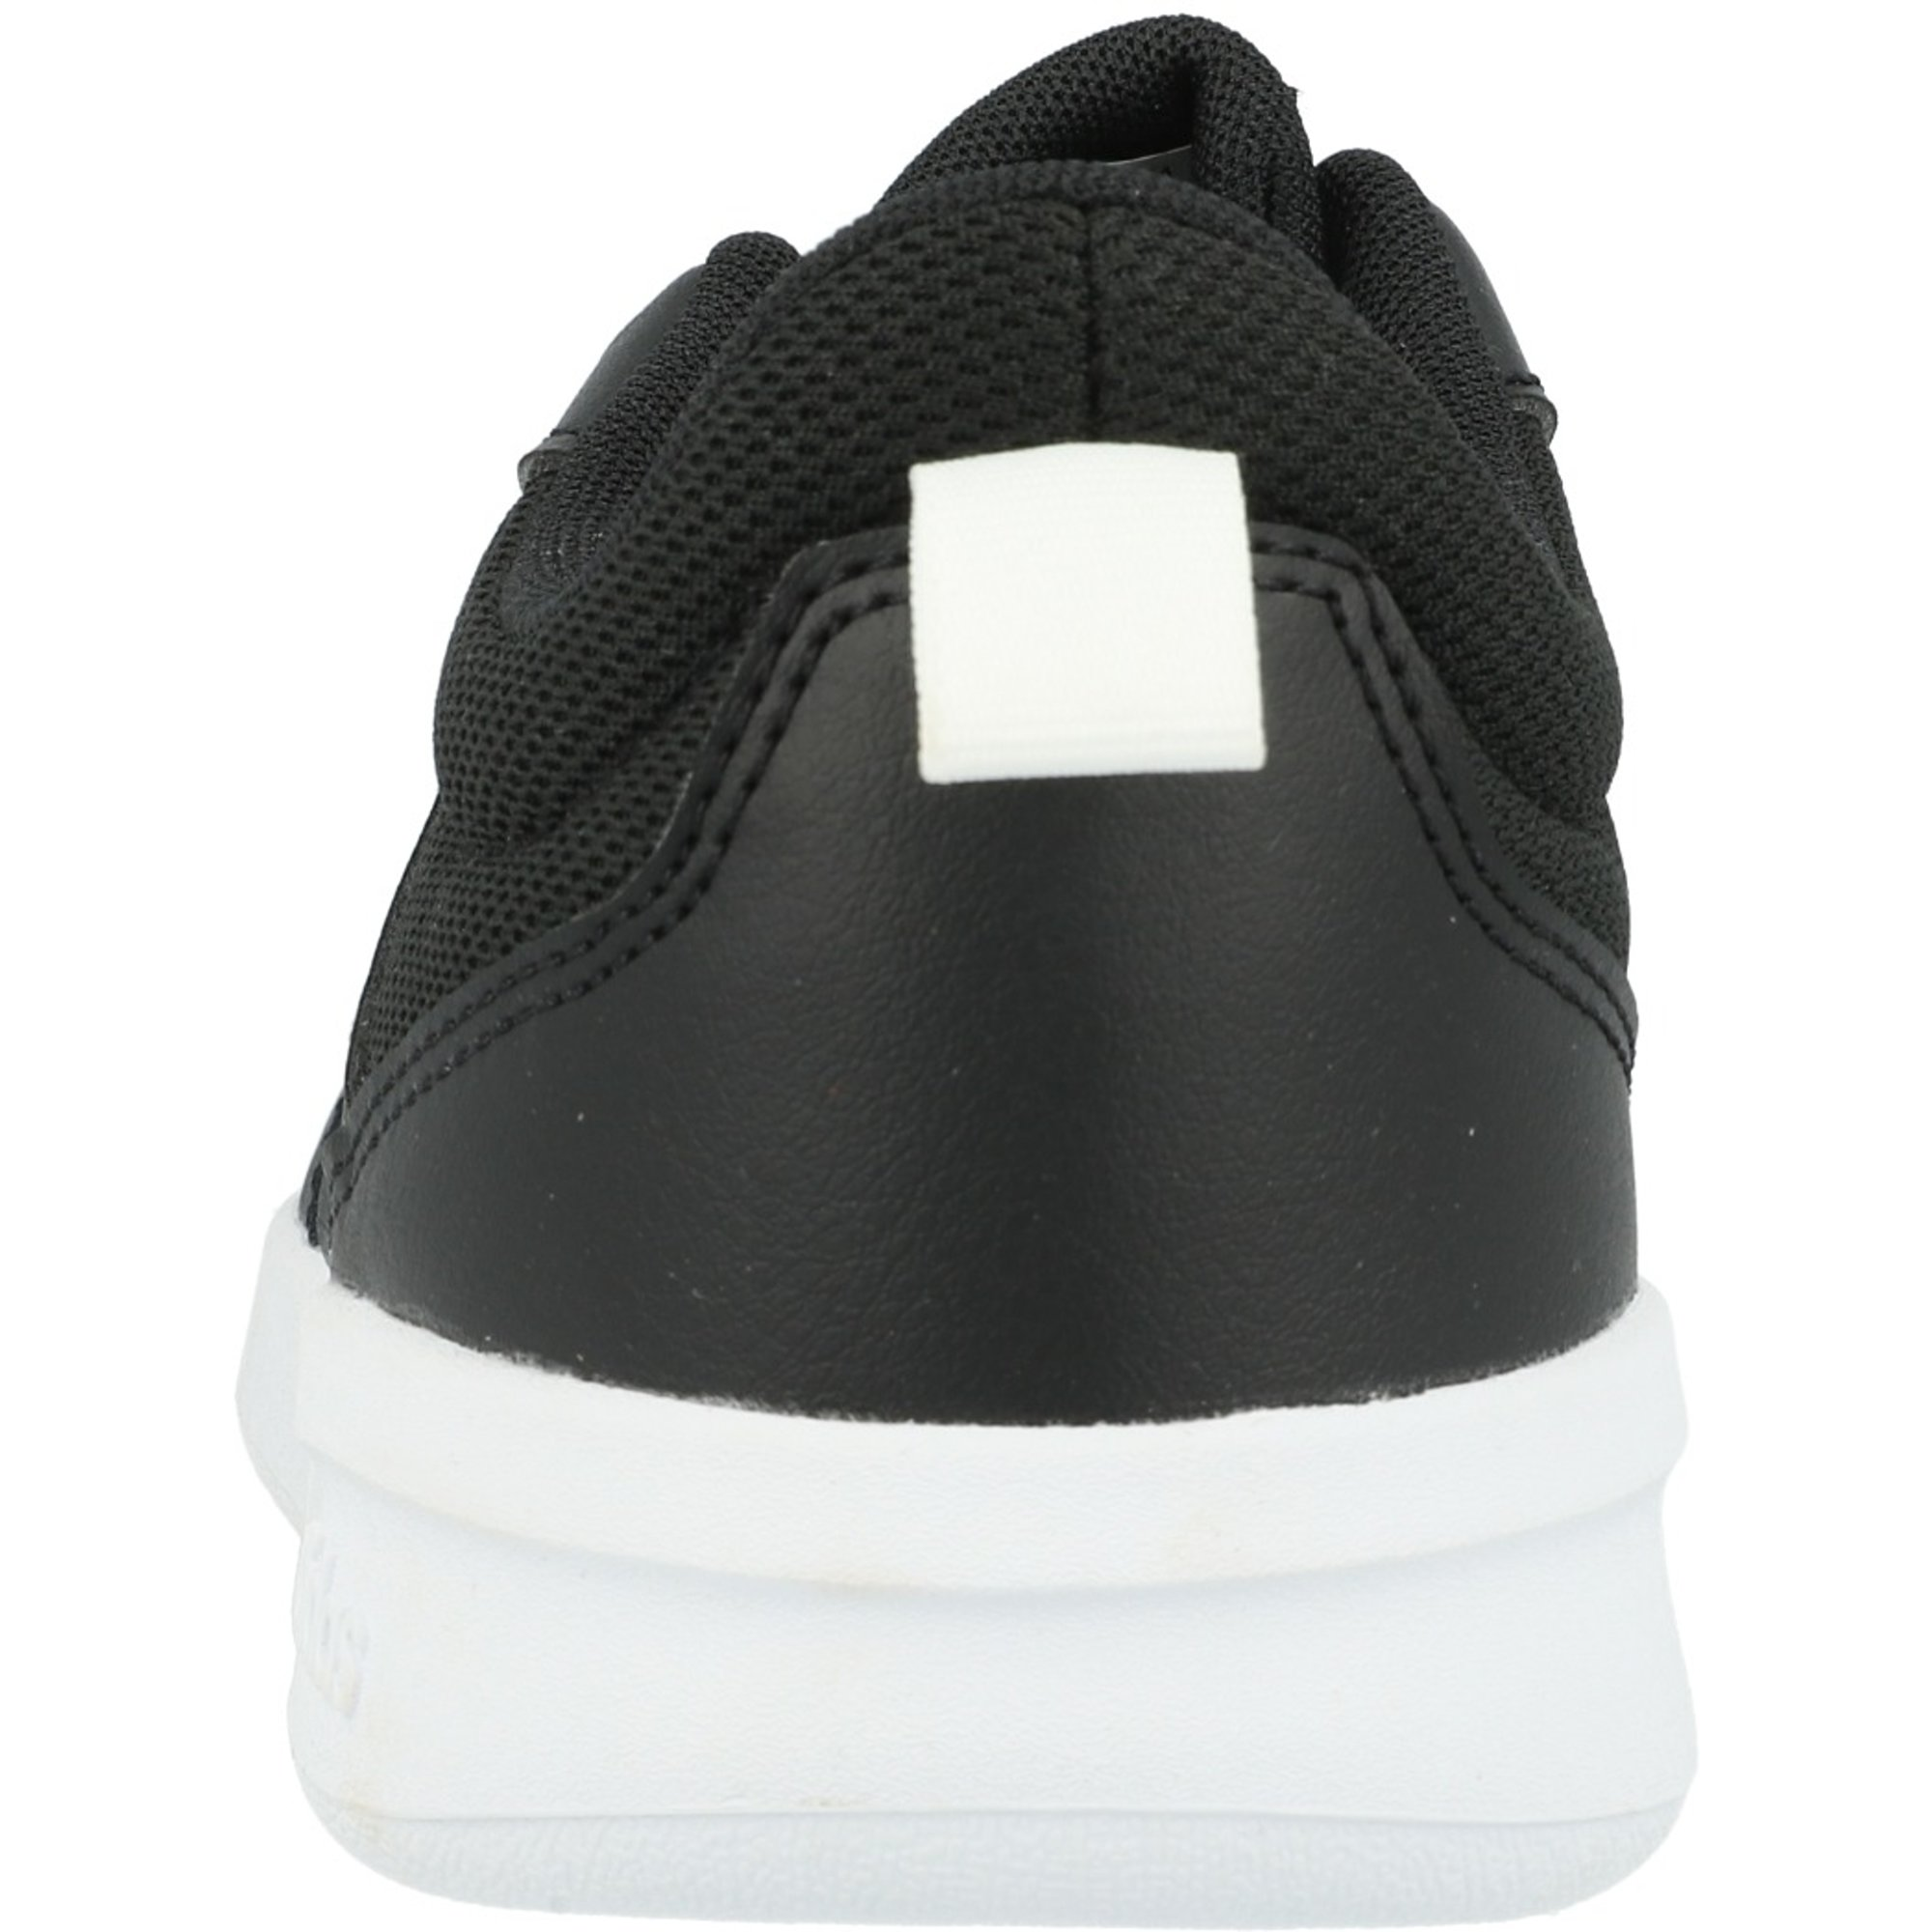 adidas Tensaur K Black/White Leather